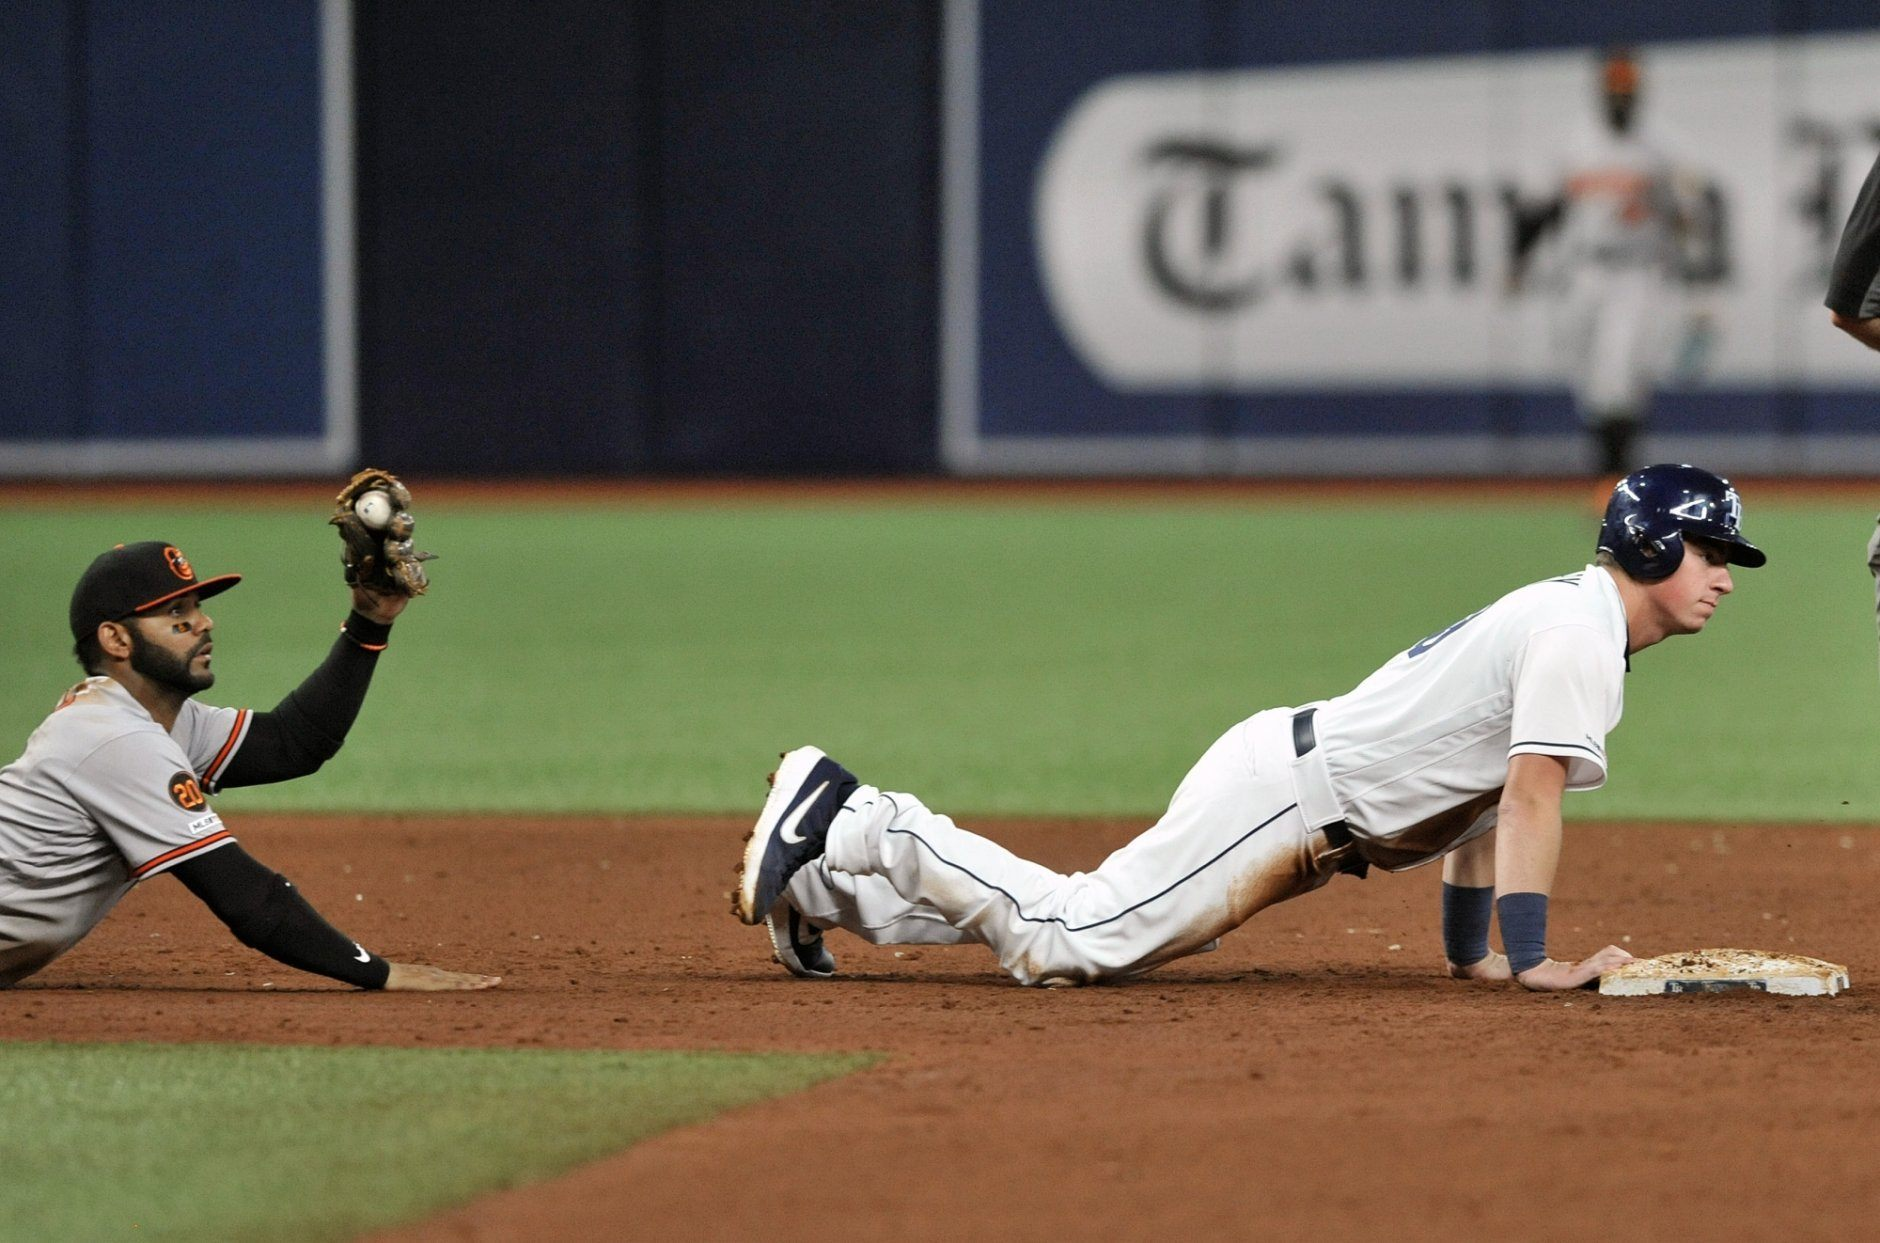 Baltimore Orioles shortstop Jonathan Viillar holds up his glove after tagging out Tampa Bay Rays' Brendan McKay, right, on a pickoff throw from catcher Pedro Severino during the sixth inning of a baseball game Monday, July 1, 2019, in St. Petersburg, Fla. (AP Photo/Steve Nesius)